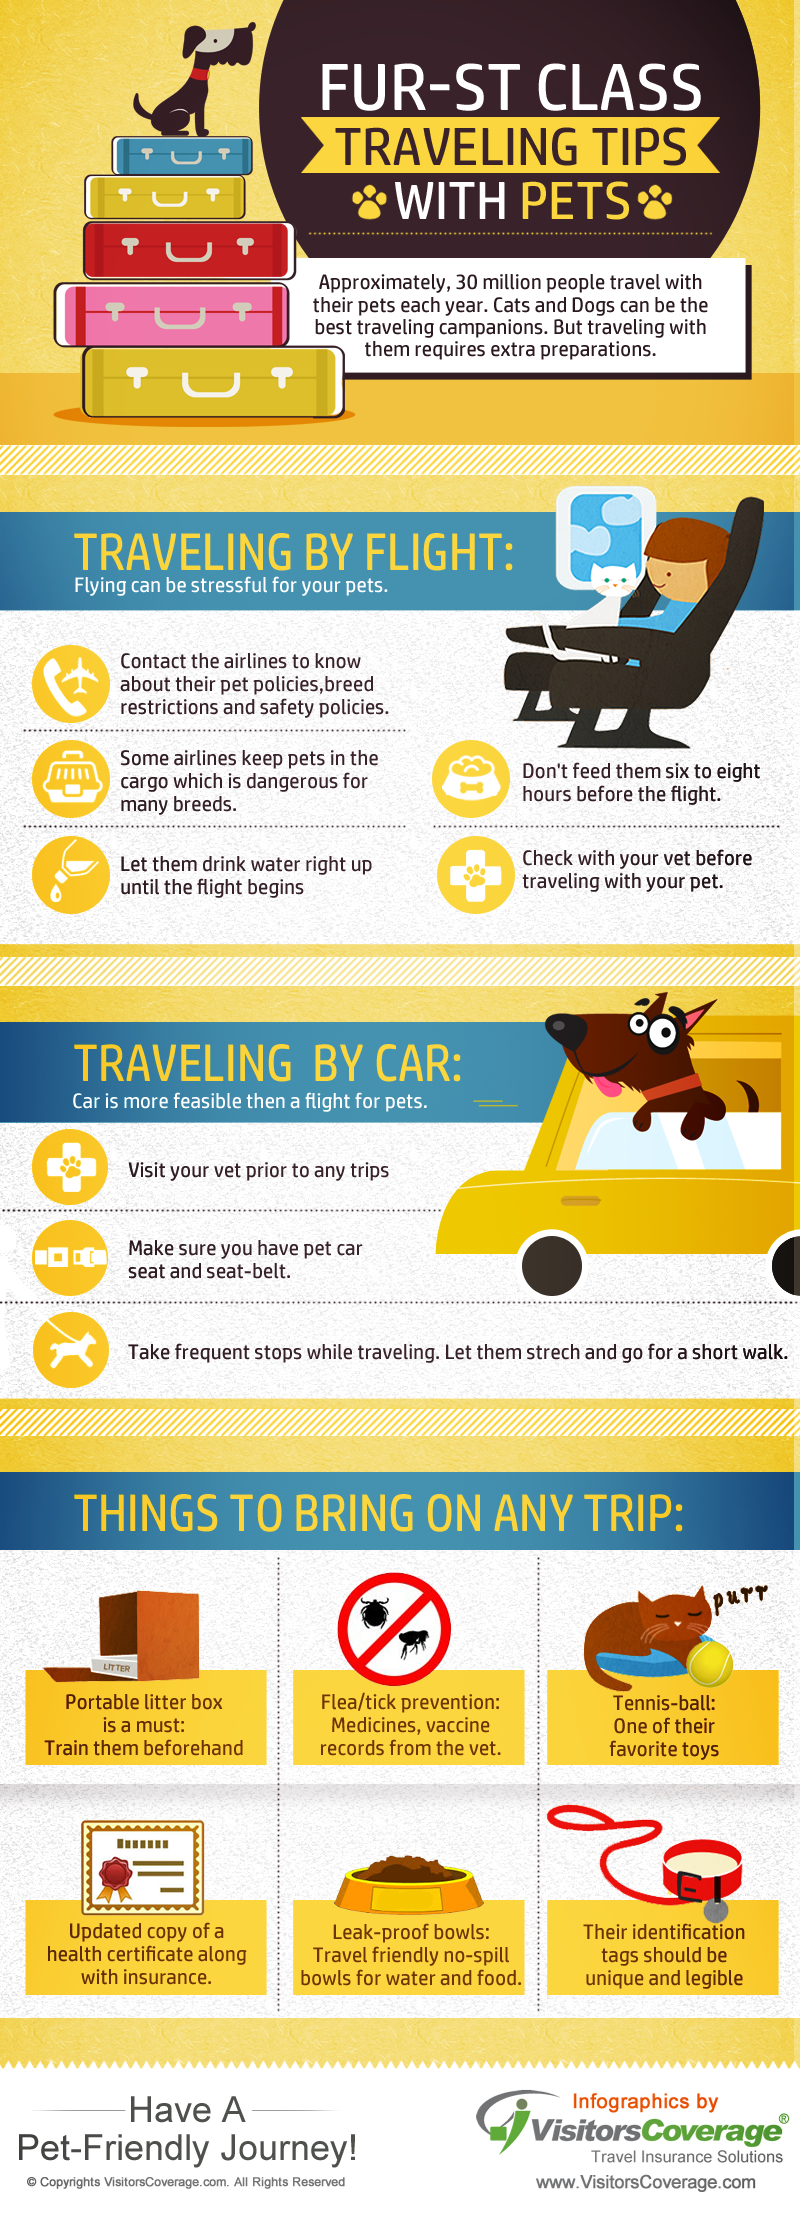 Traveling Tips With Pets